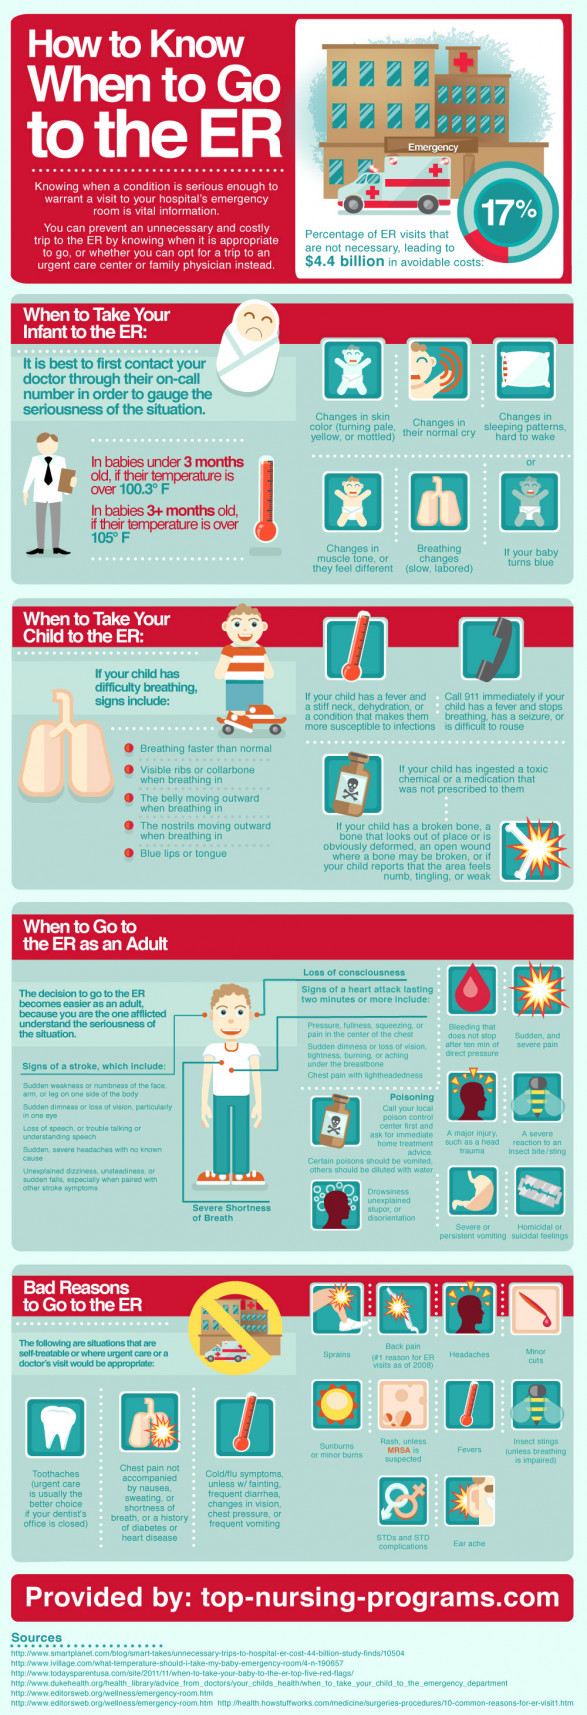 How to Know When to Go to the ER